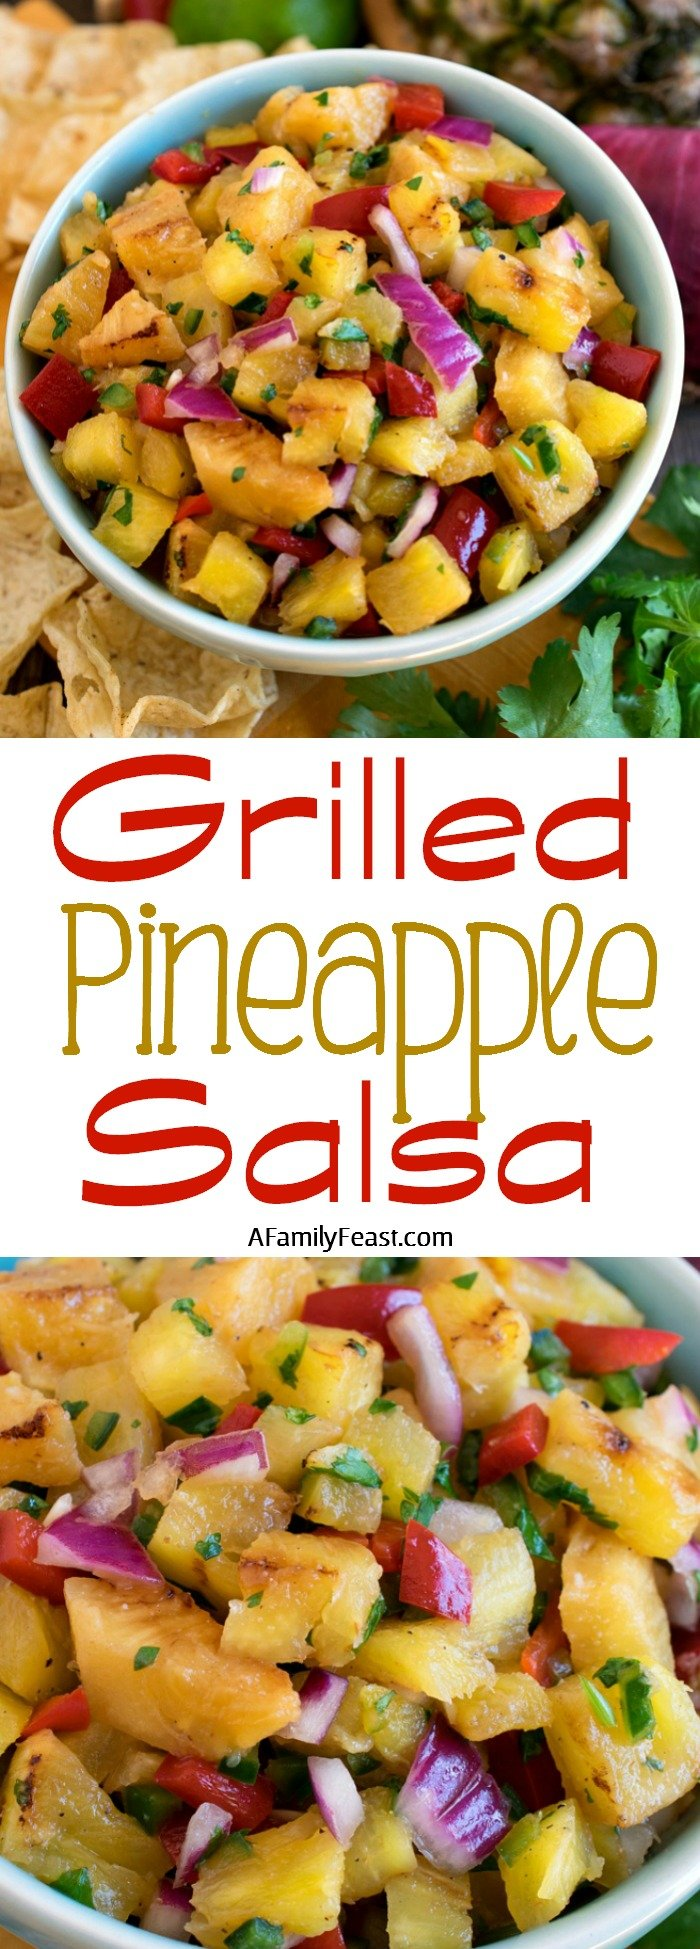 Grilled Pineapple Salsa - This easy salsa has fantastic flavor!